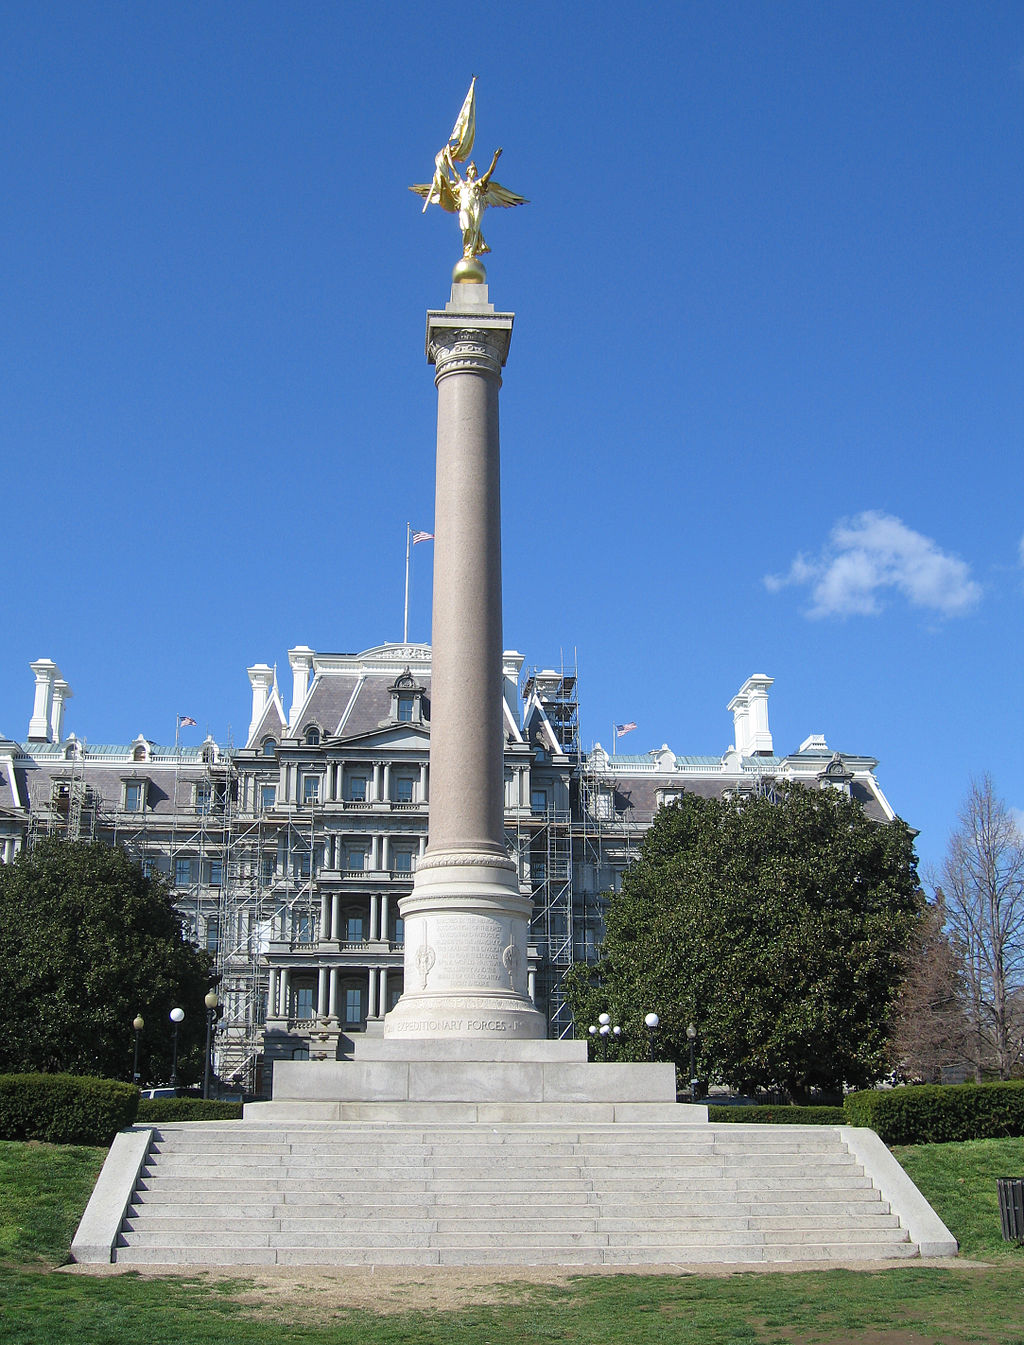 The Eisenhower Executive Office Building housed the Departments of State, War, and the Navy when the First Division Monument was built. Photo by Leonard J. DeFrancisci, Wikimedia.